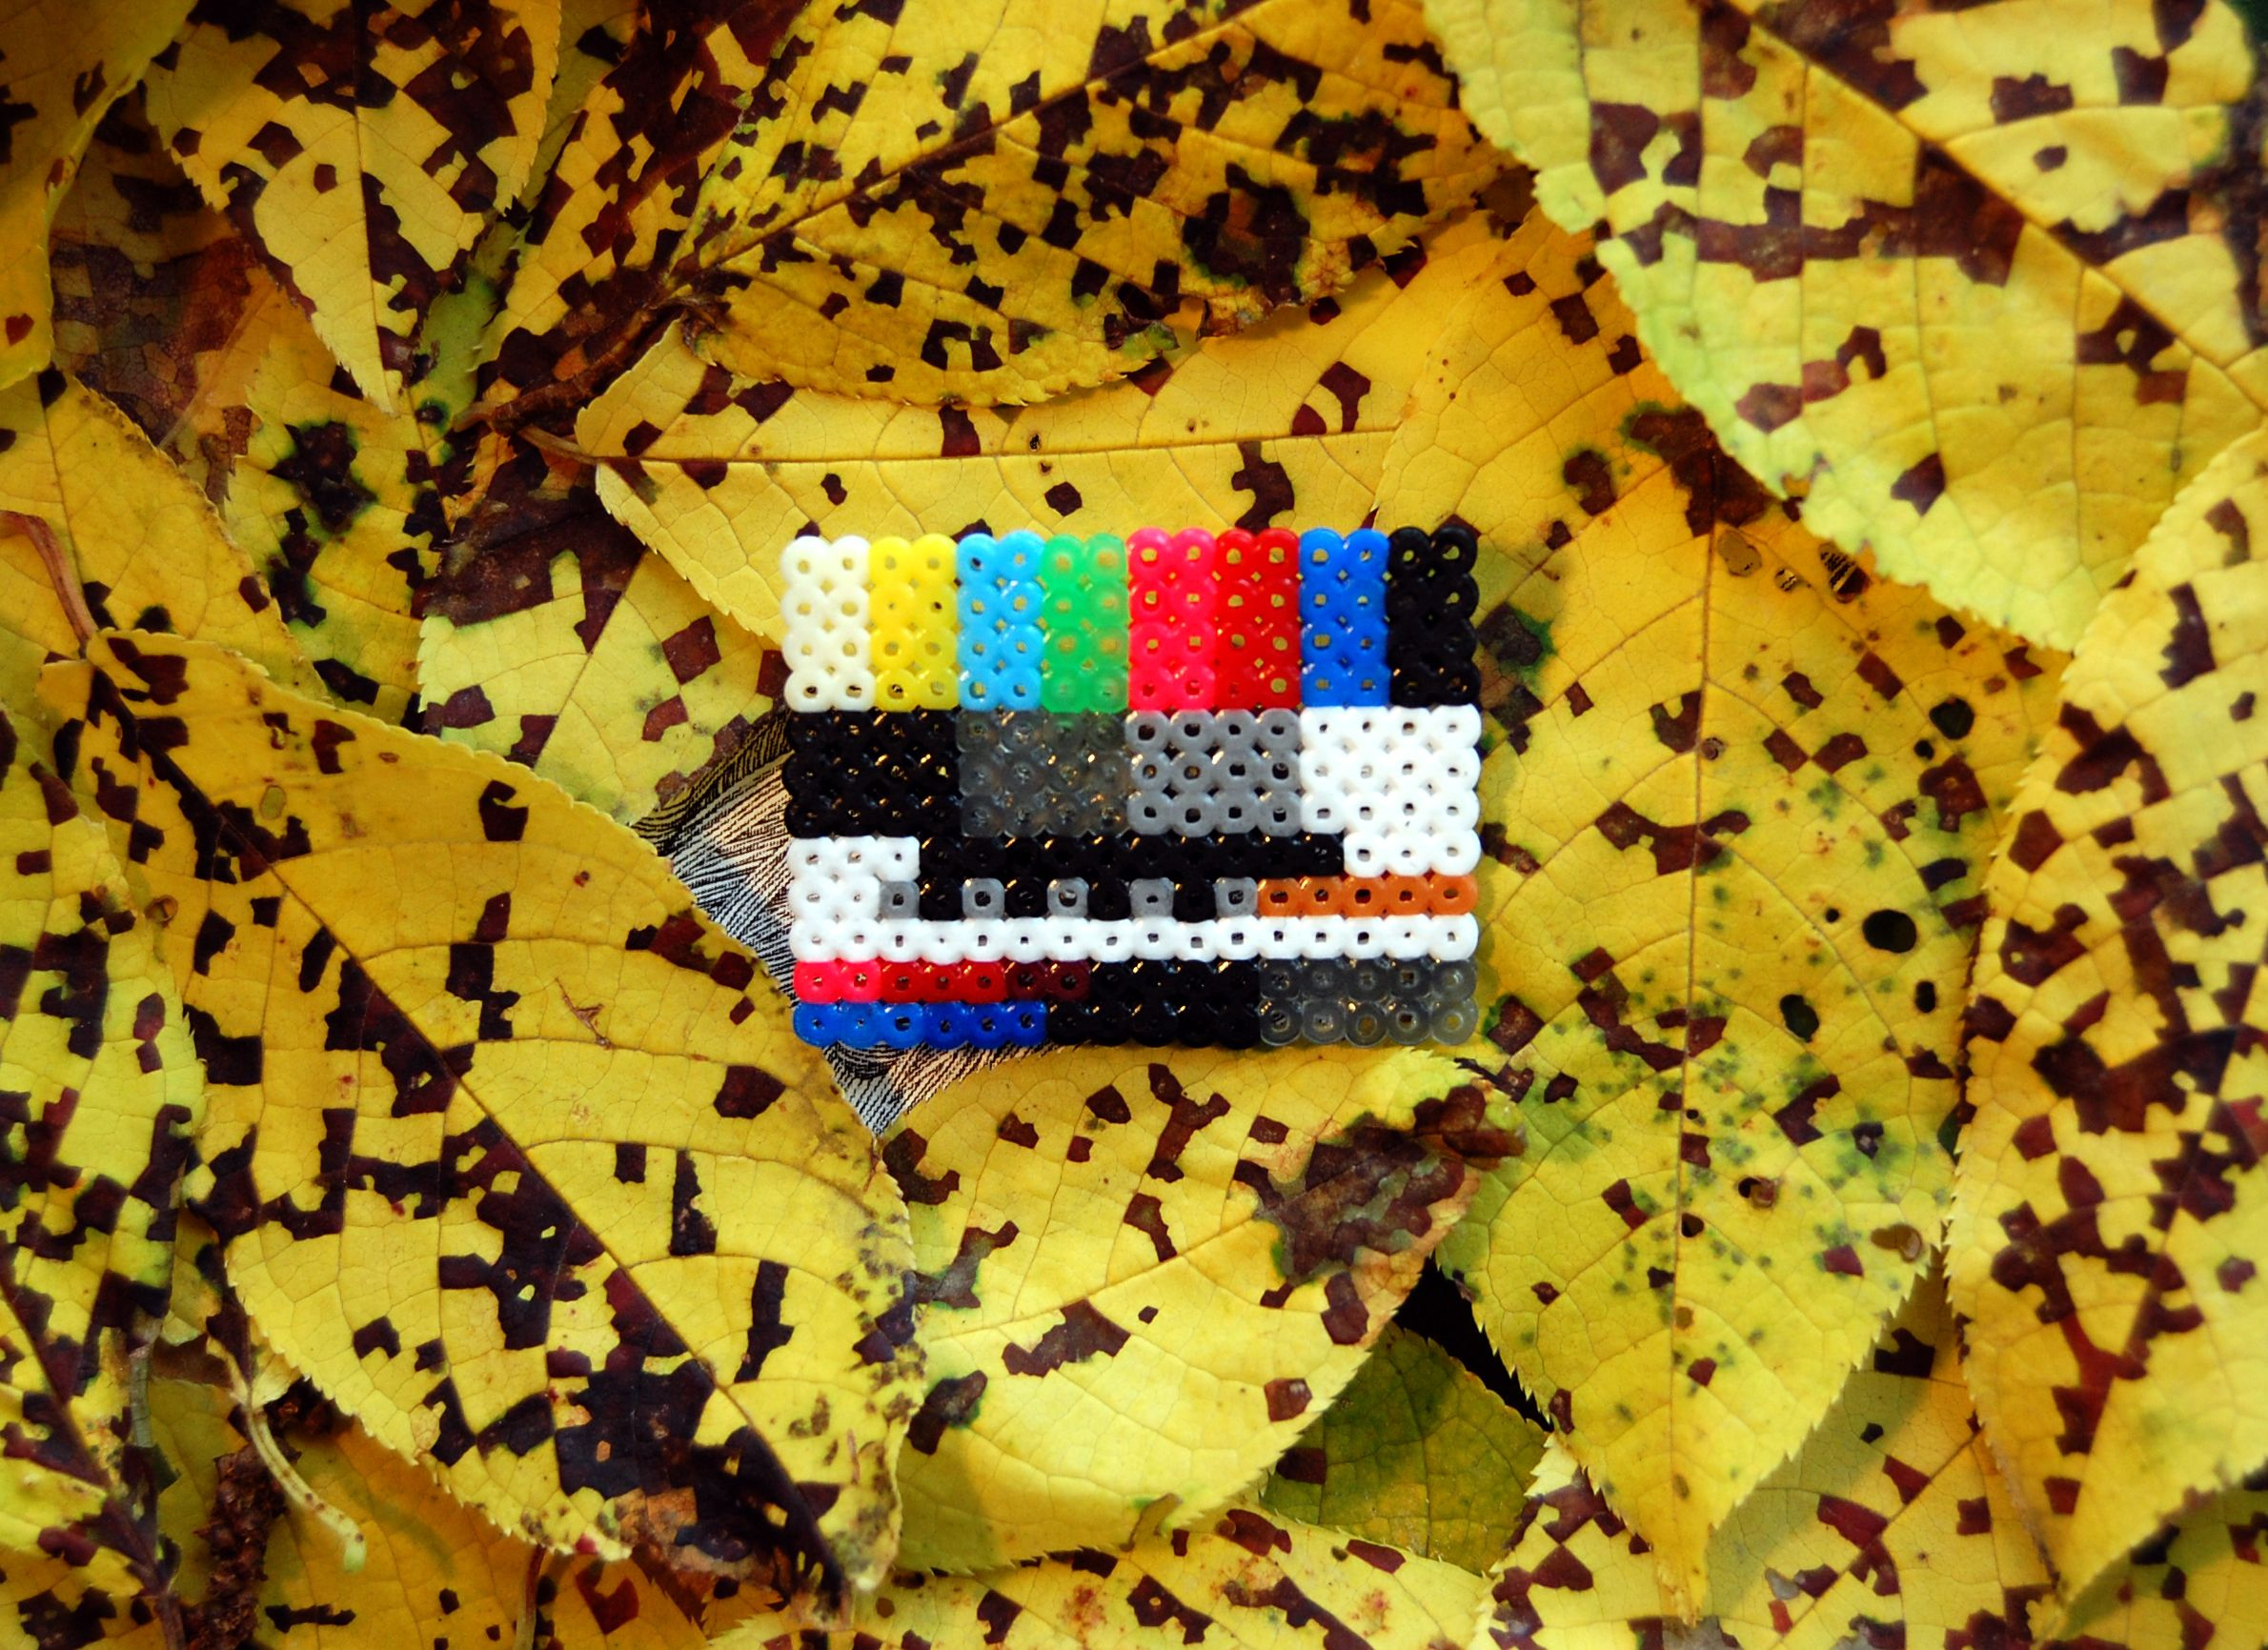 Telefunken Test Telefunken Fubk Tv Test Screen Brooch Mini Hama Beads Hama